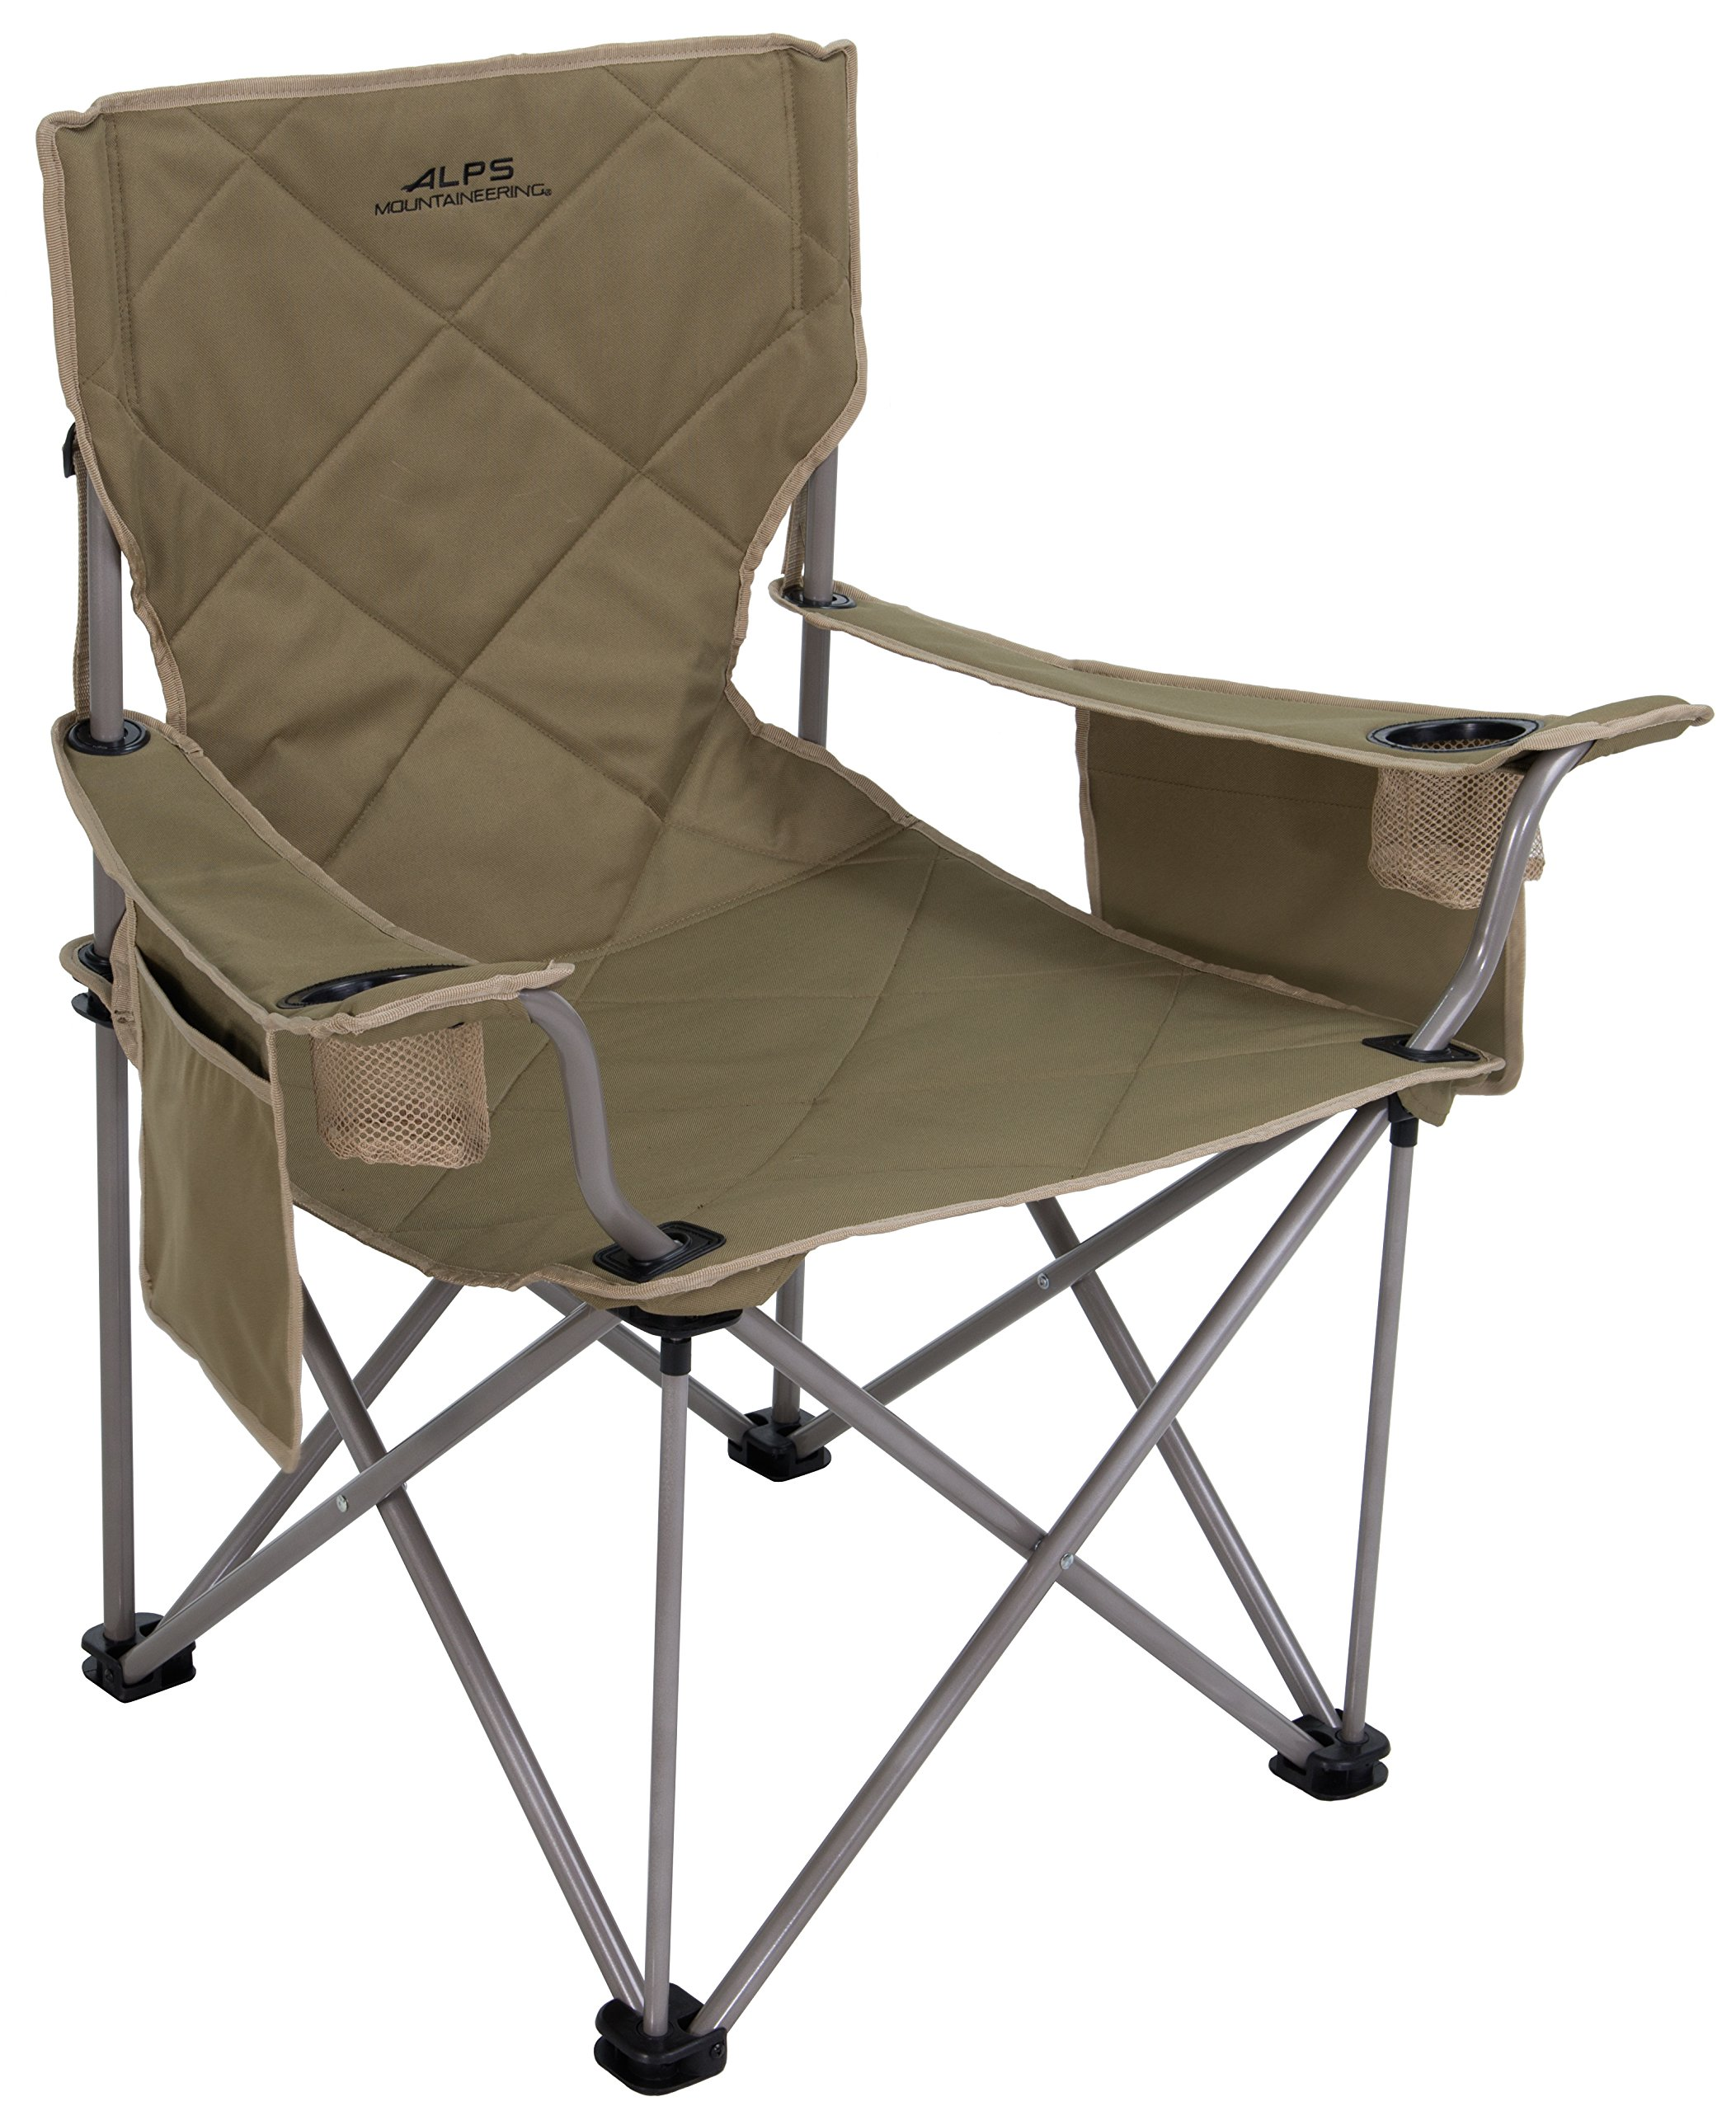 Best Rated in Camping Chairs & Helpful Customer Reviews Amazon